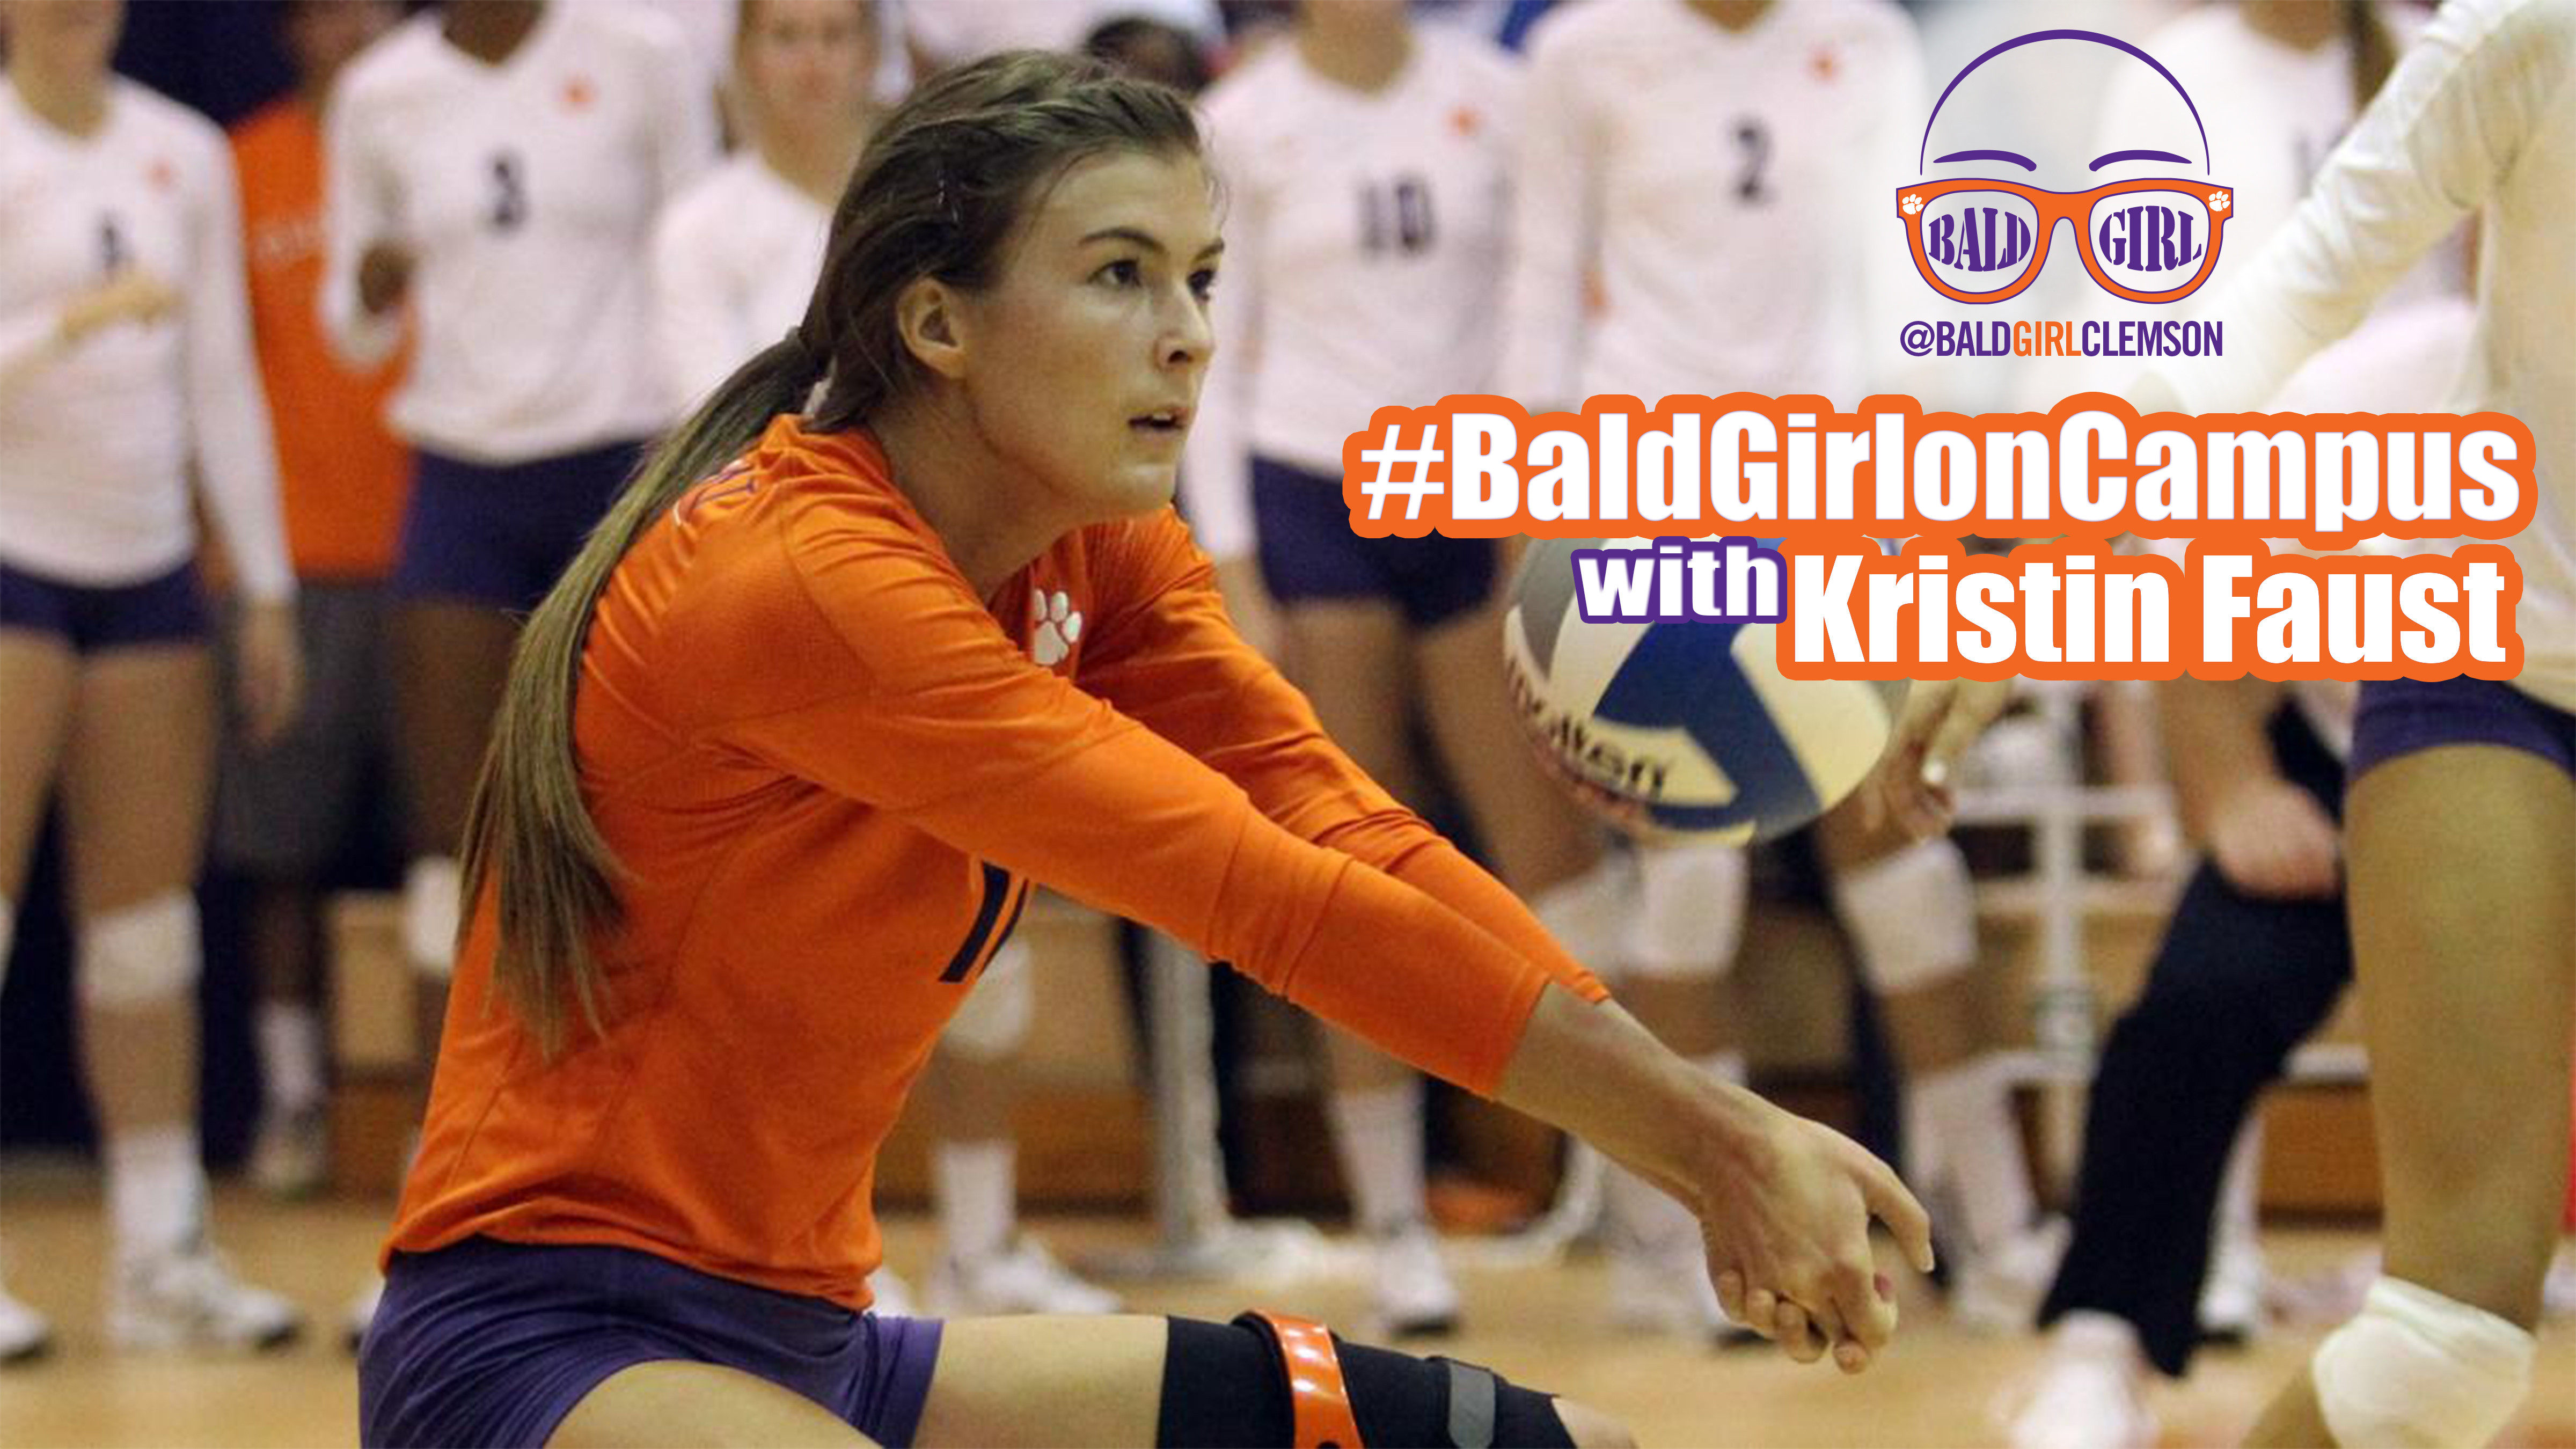 ClemsonTigers.com's Bald Girl on Campus: Volleyball's Kristin Faust